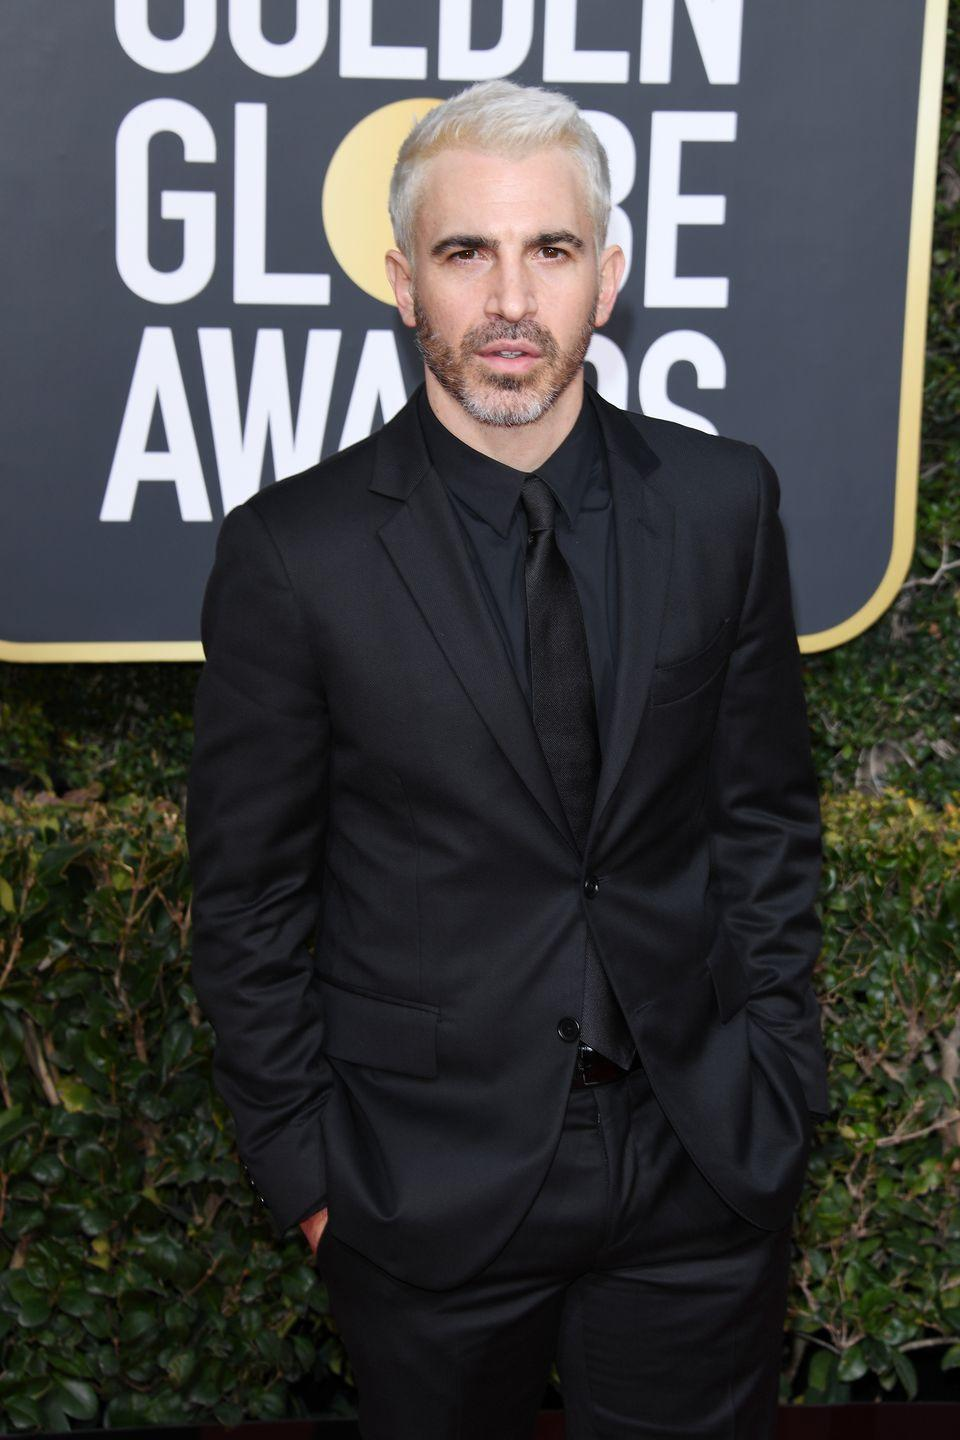 "<p><strong>Blonde</strong> </p><p>At the 2019 Golden Globes, though, the <em>Newsroom</em> star thought it would be a good day to give fans a <a href=""https://twitter.com/blackmon/status/1082075873510154240"" rel=""nofollow noopener"" target=""_blank"" data-ylk=""slk:thirst-trap"" class=""link rapid-noclick-resp"">thirst-trap</a> worthy moment. </p>"